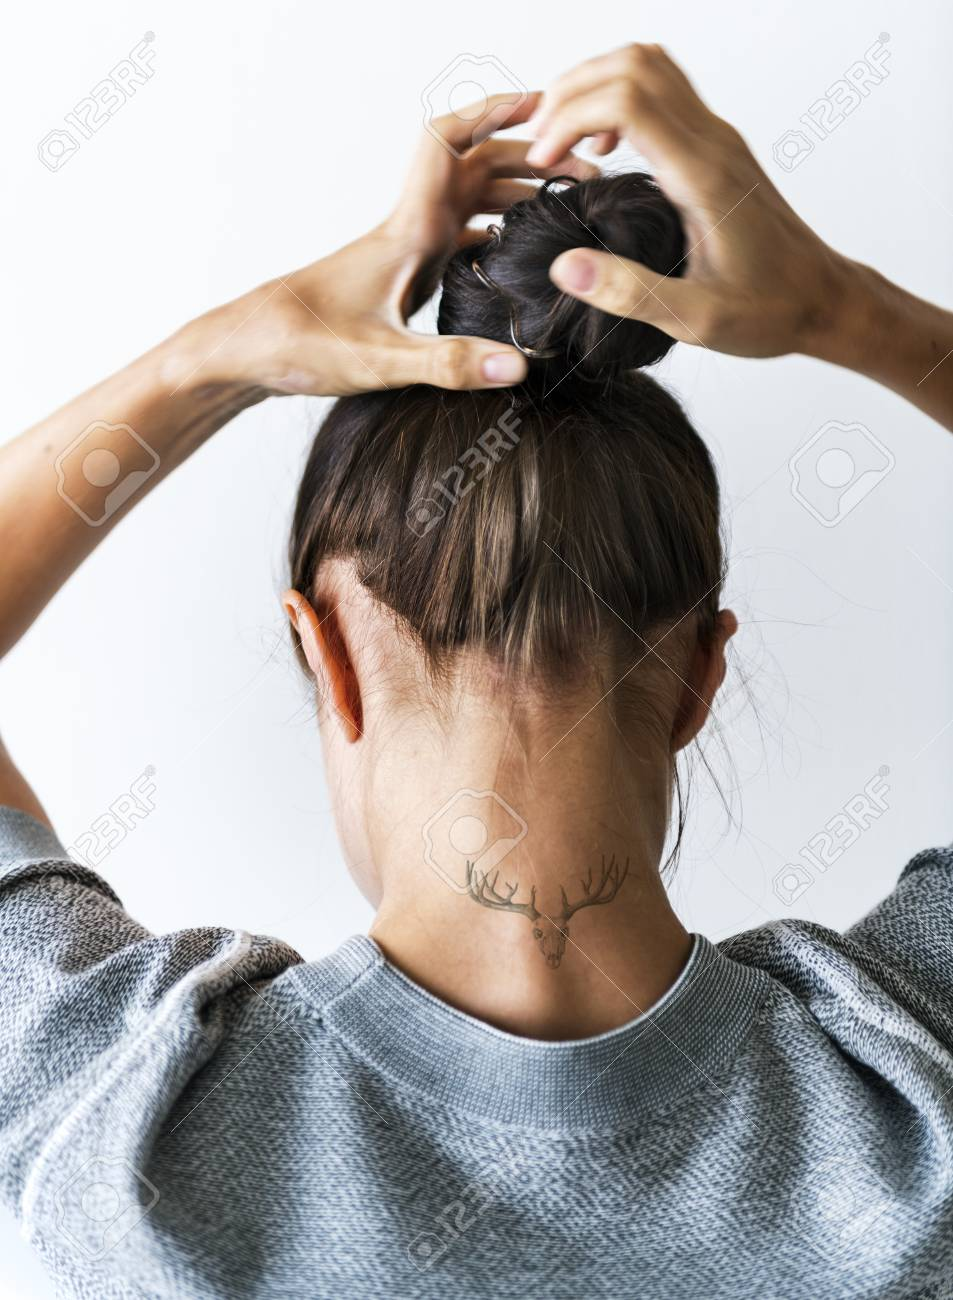 Woman Putting Her Hair Up In A Bun Stock Photo, Picture And Royalty ...